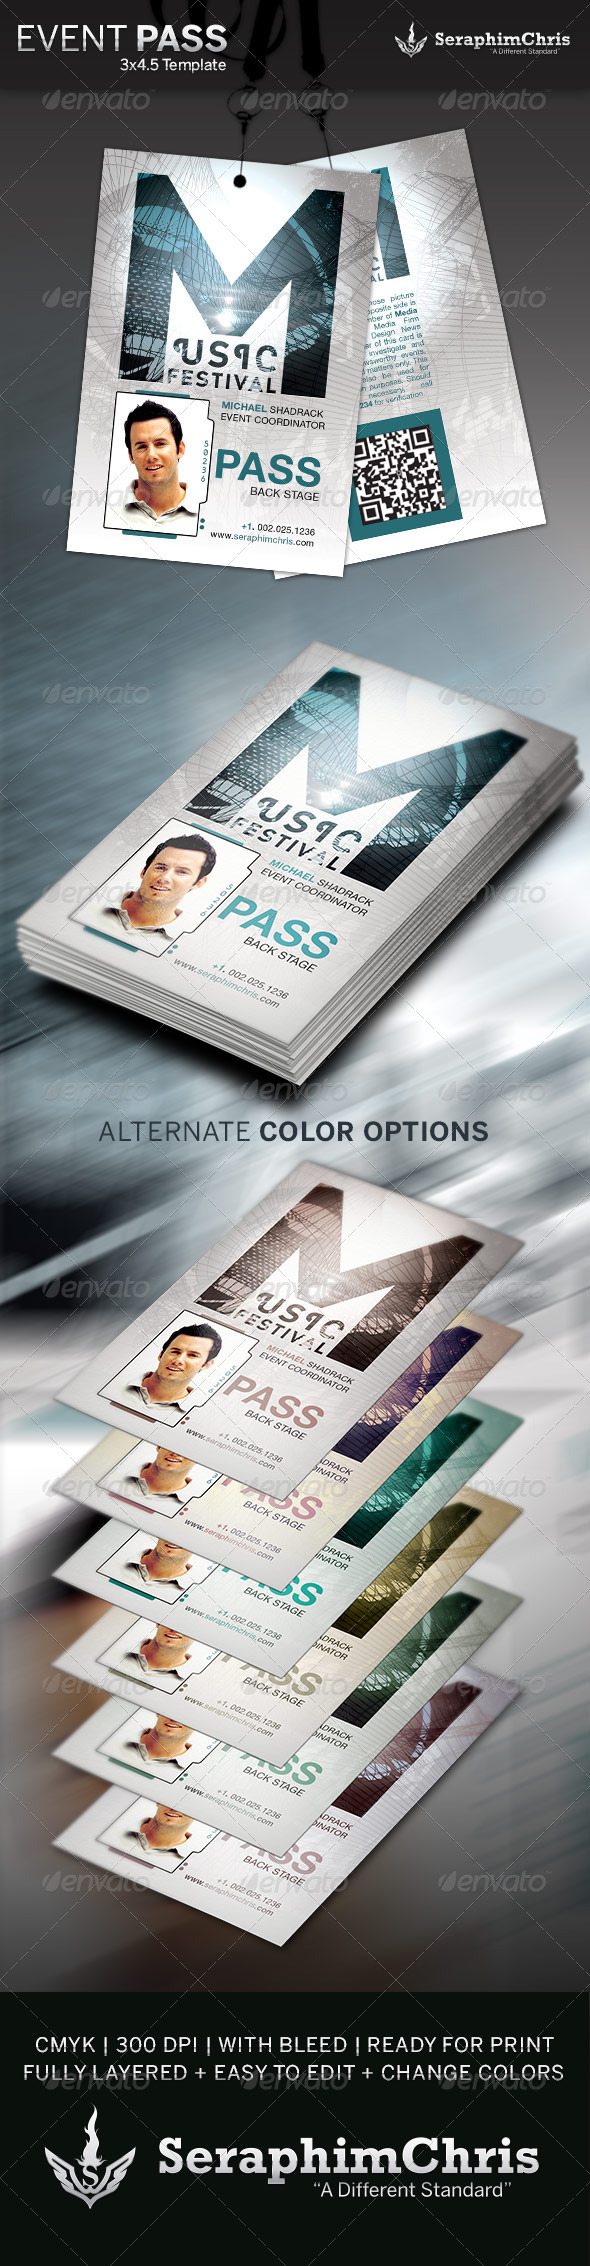 music event pass template graphicriver. Black Bedroom Furniture Sets. Home Design Ideas